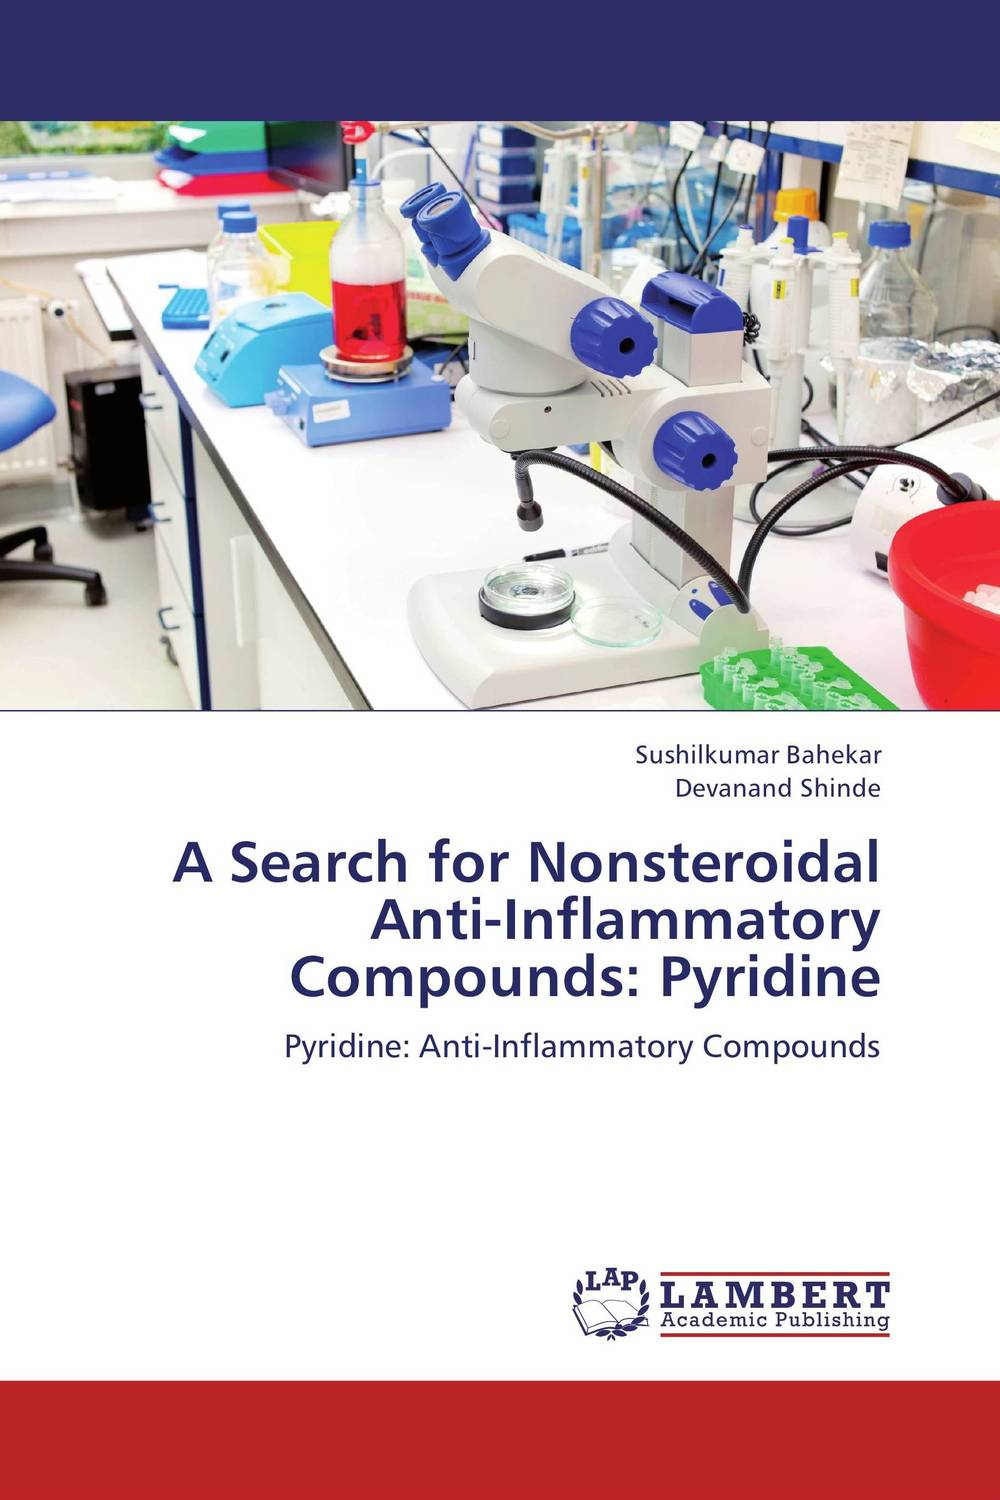 A Search for Nonsteroidal  Anti-Inflammatory Compounds: Pyridine hzsecurity am mono system for anti shoplifting in the supermarket or garment stores 58khz